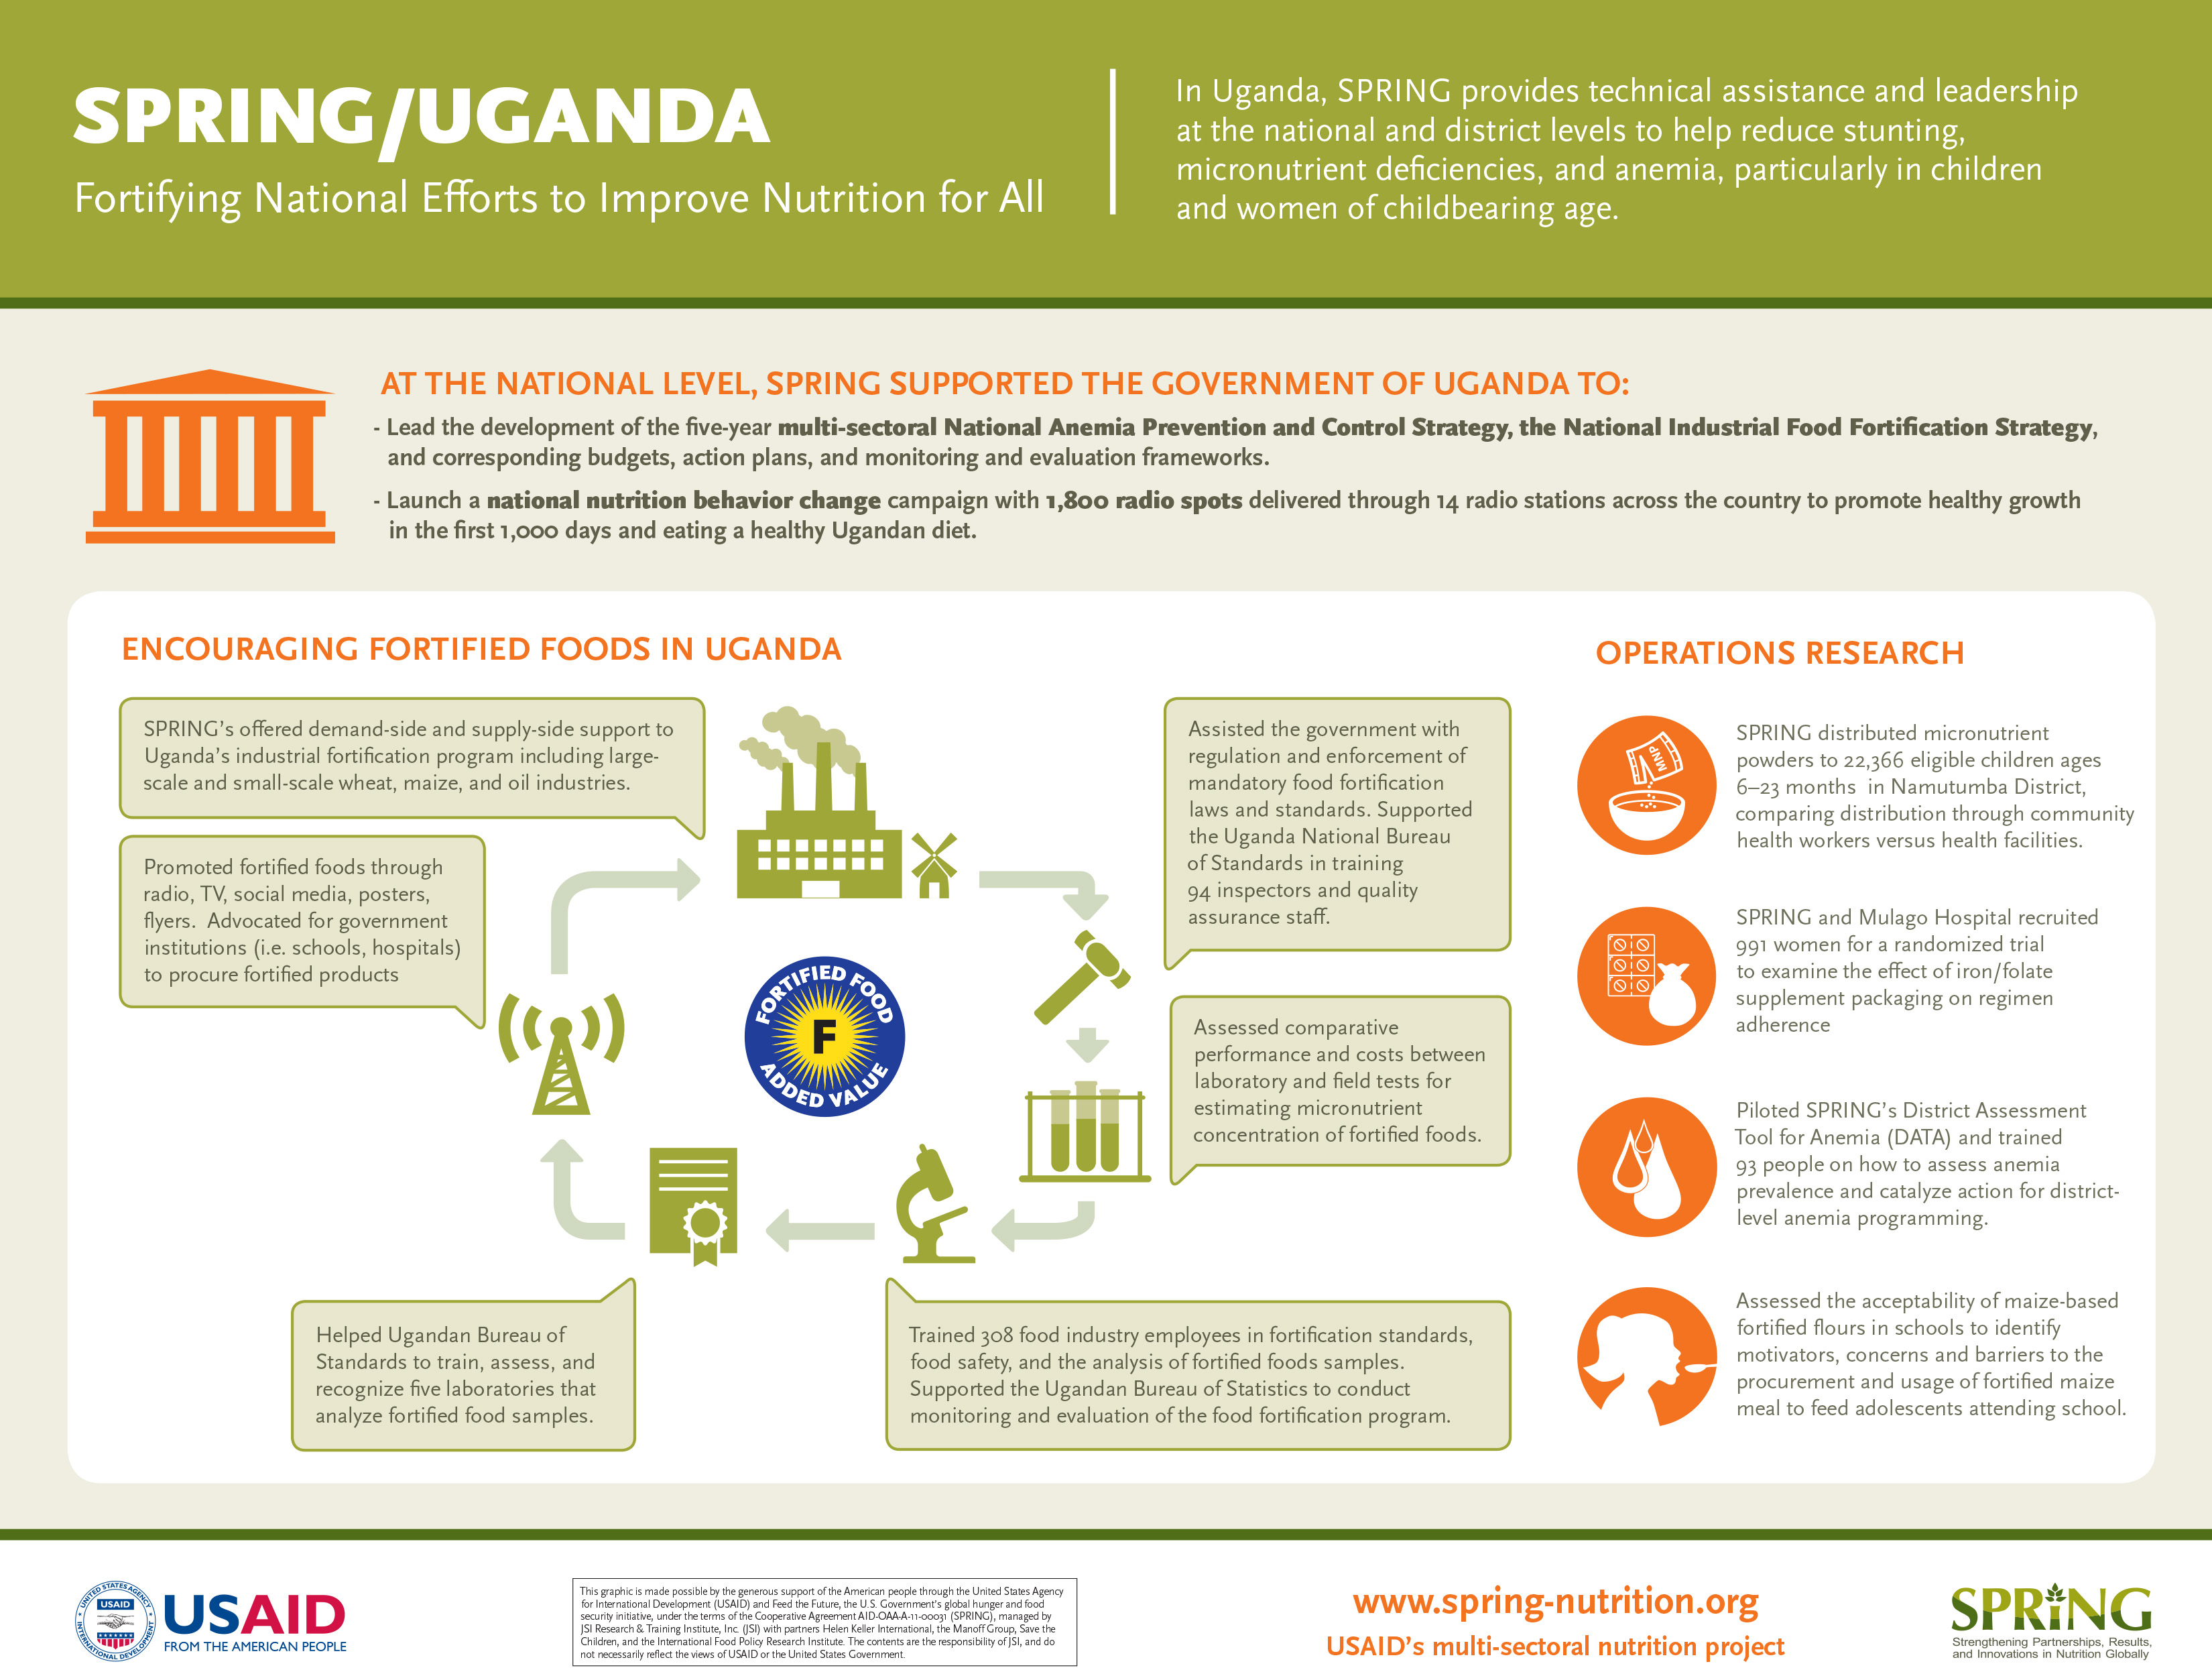 First page of the infographic - see PDF for contents